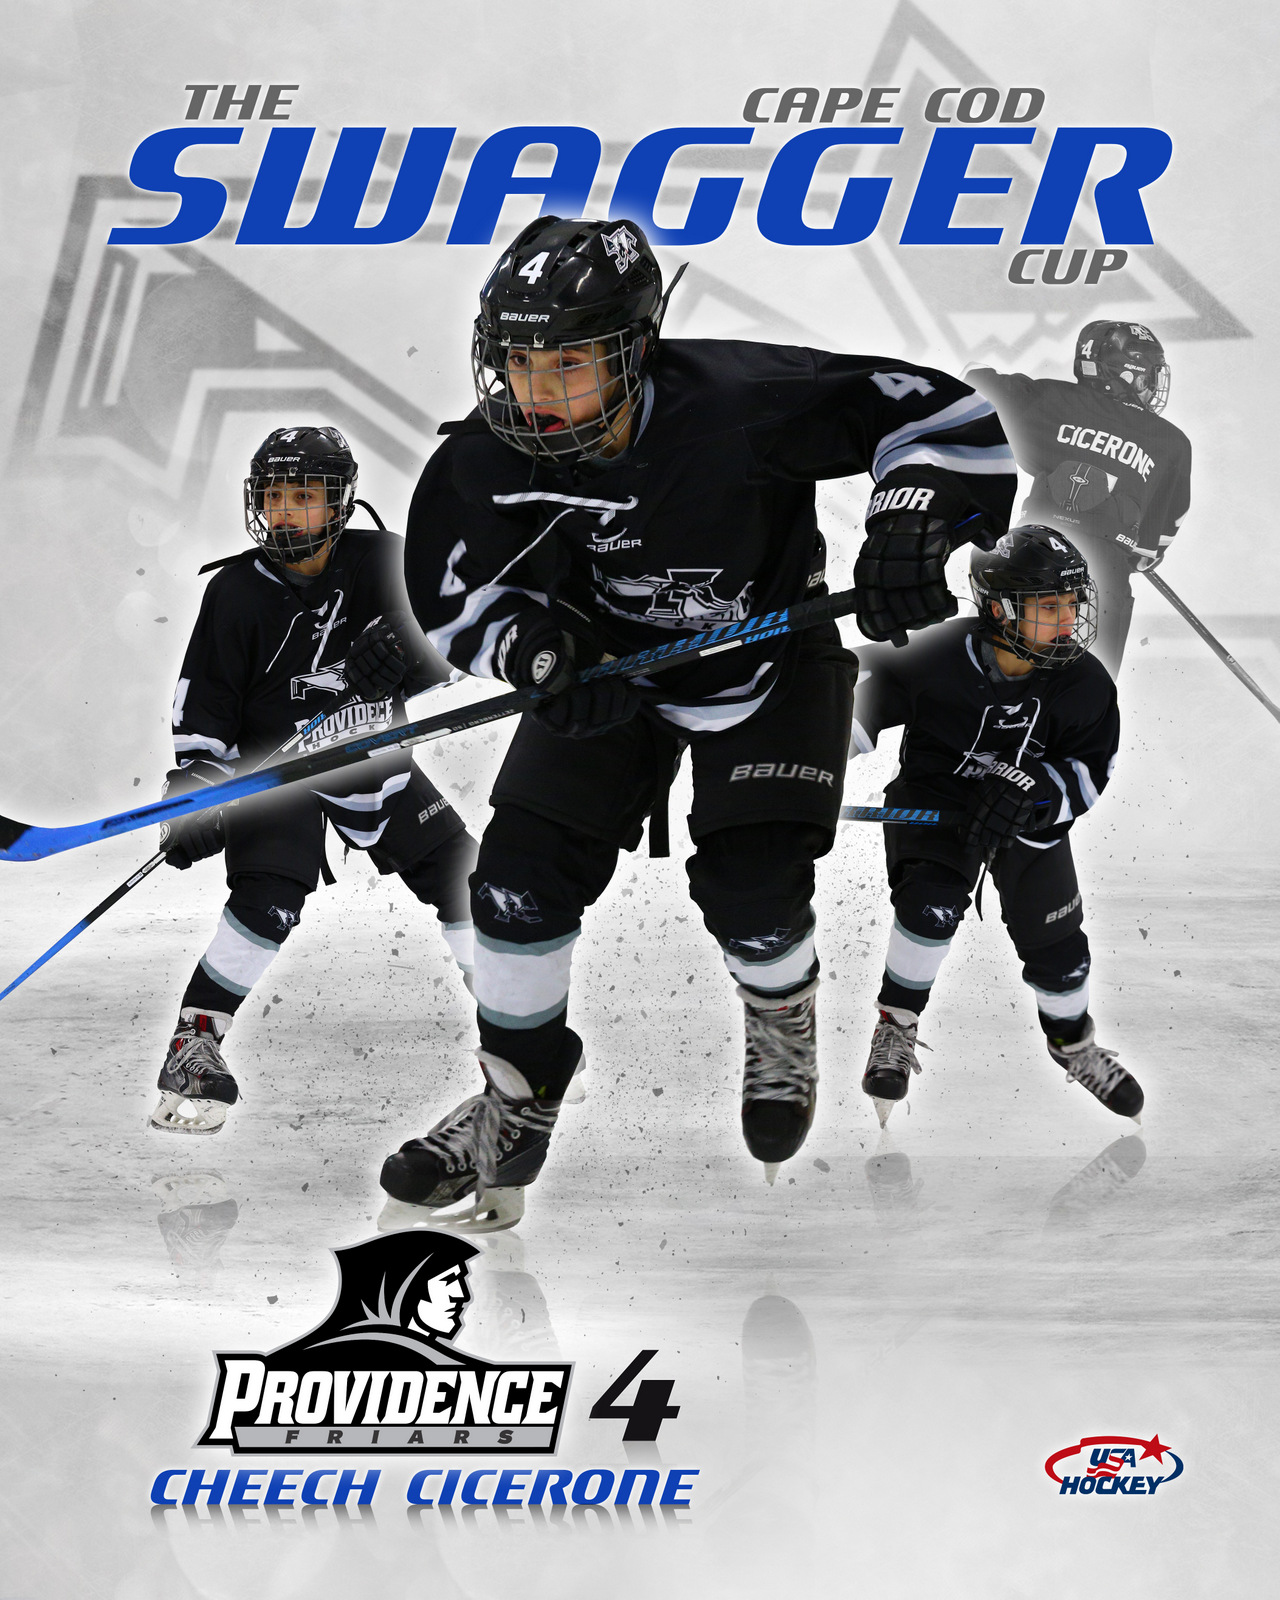 SilverPeak Studios Commemorative Poster Samples Action Sports Hockey Photography (4)